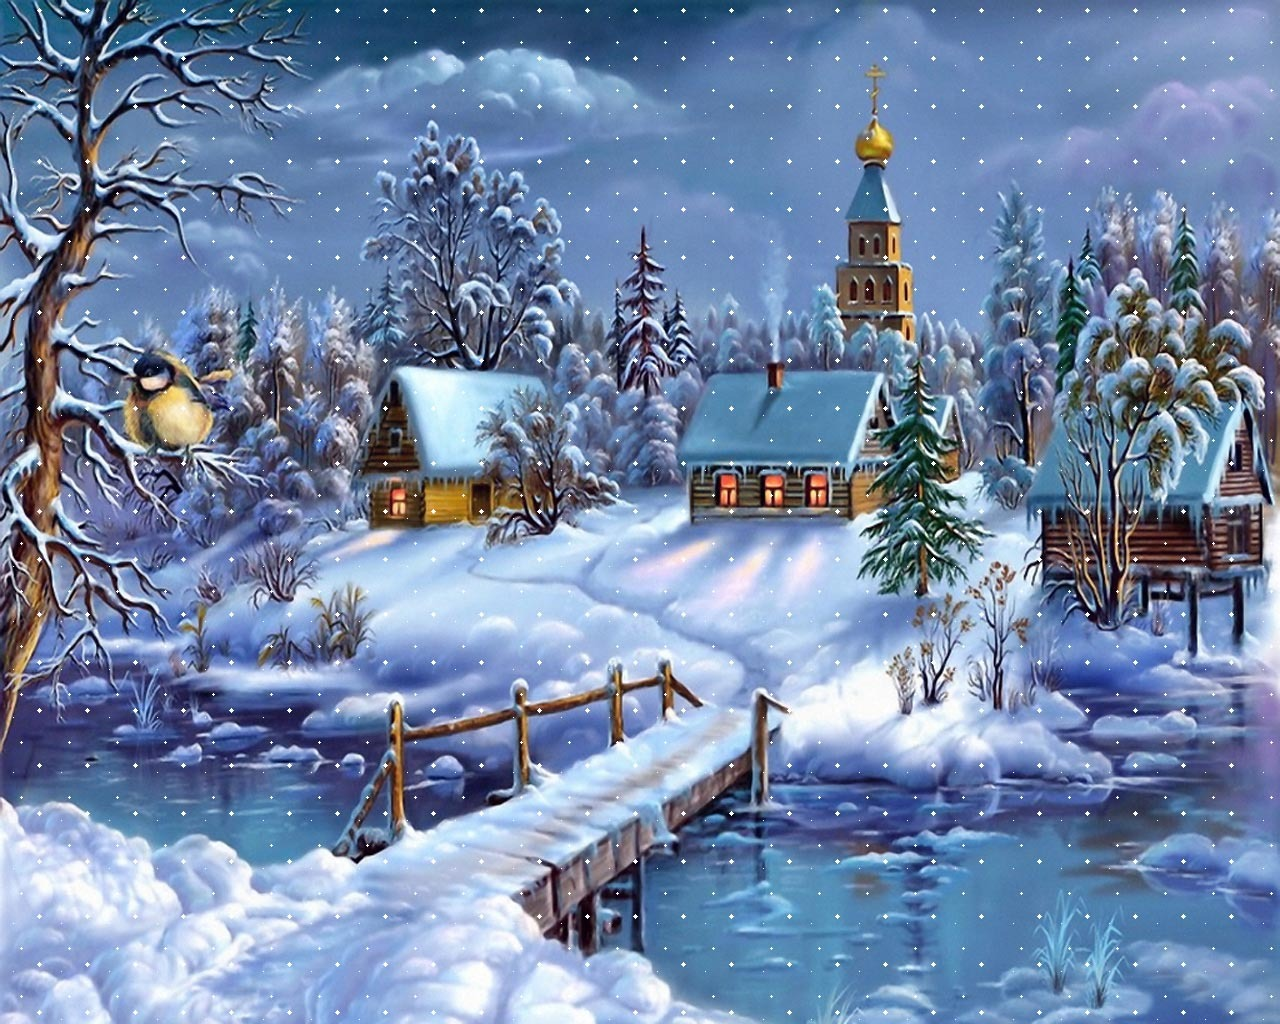 wallpaper winter wallpaper html winter scenes wallpaper filesize 1280x1024